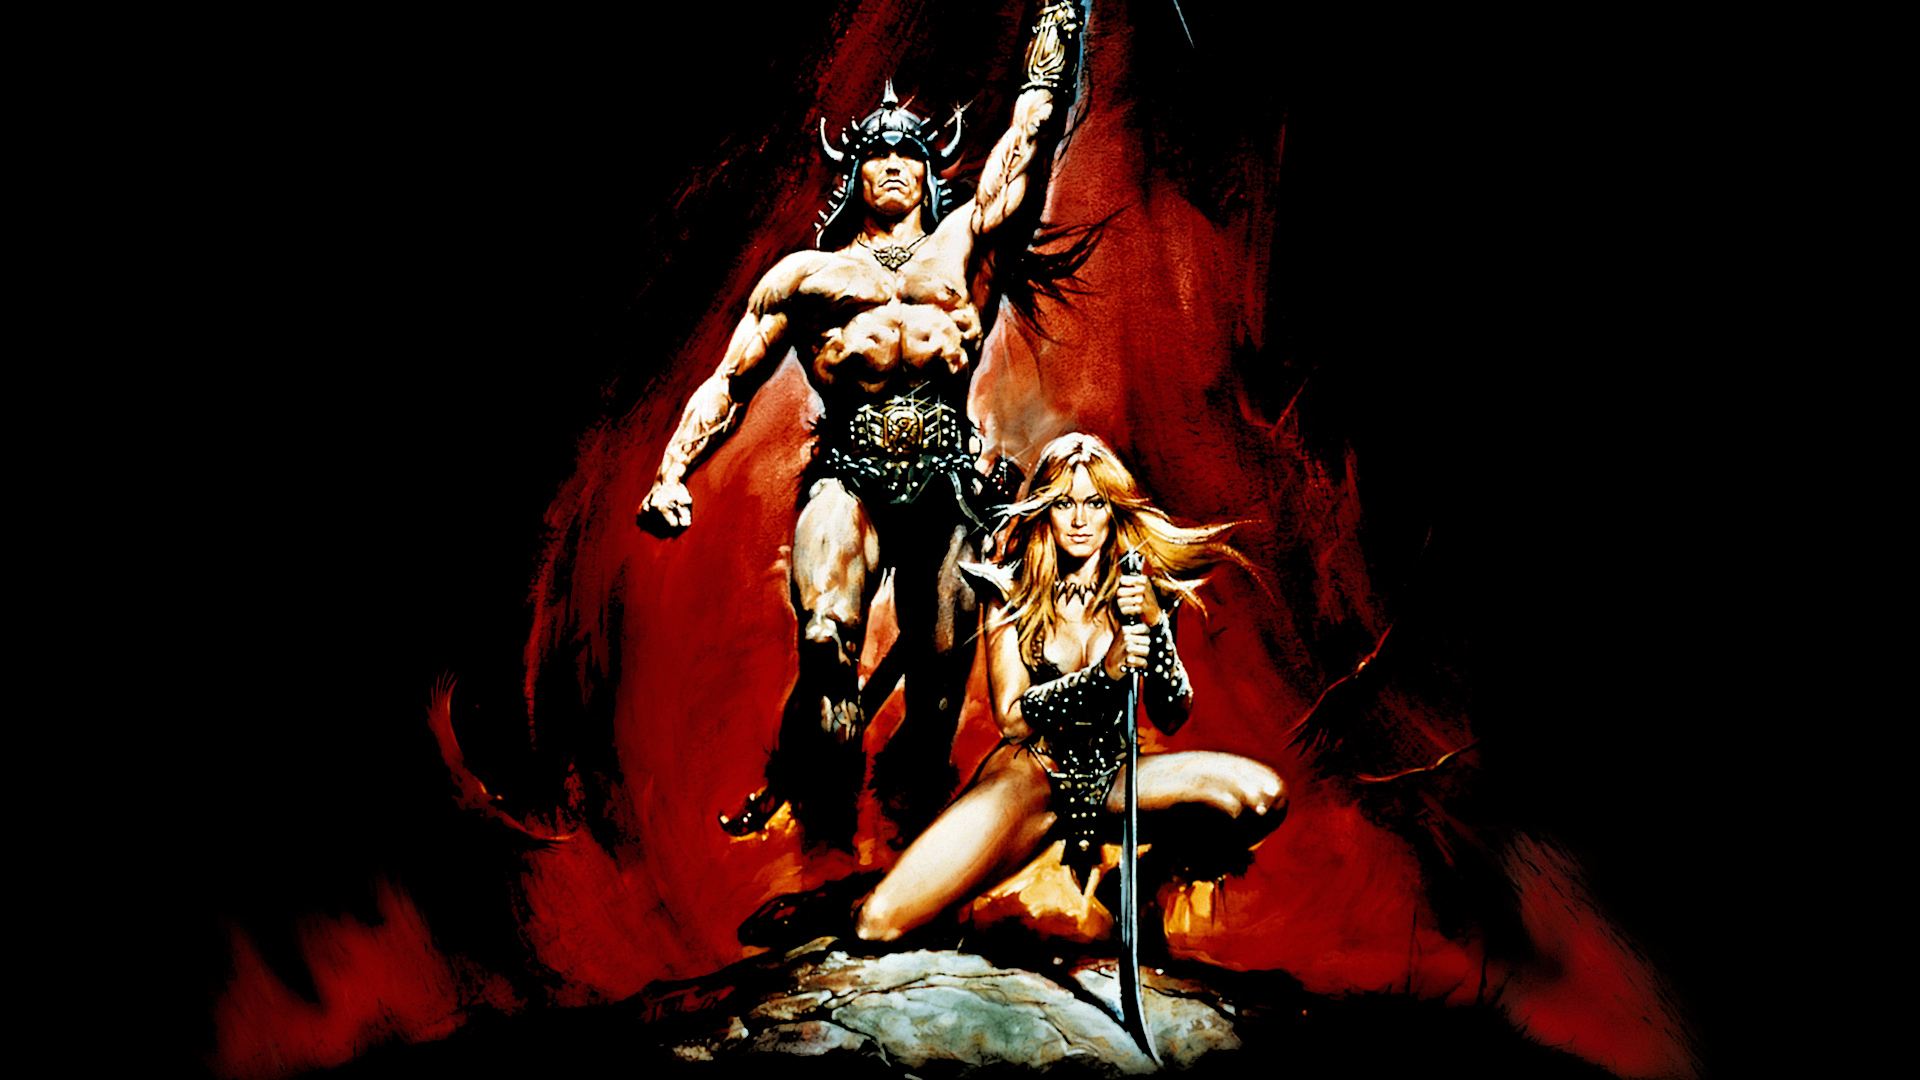 Conan the barbarian movie pictures Adobe FreeHand - Wikipedia